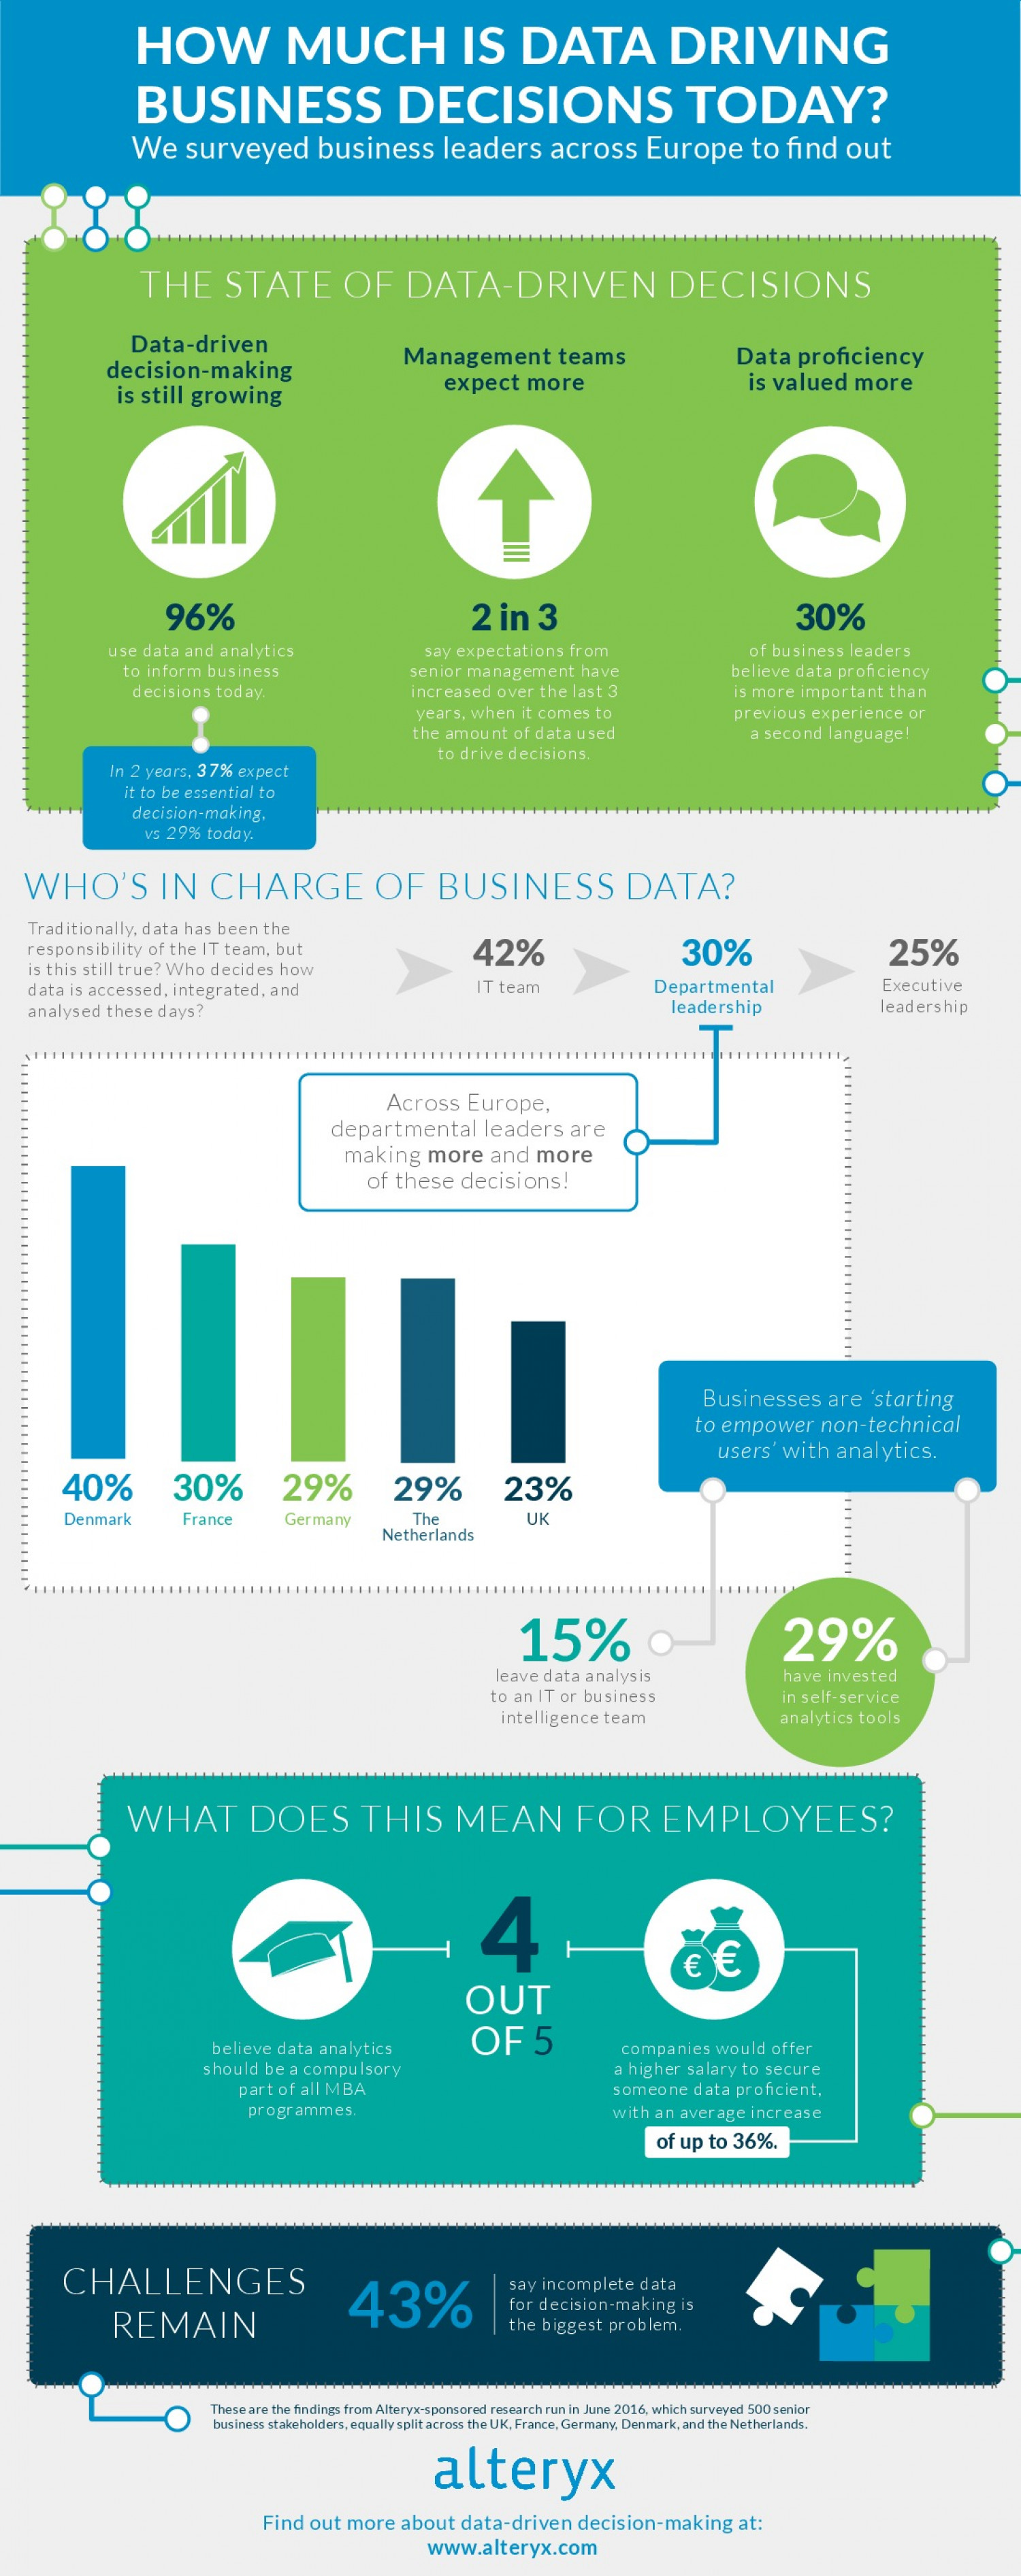 How Much Is Data Driving Business Decisions Today? Infographic